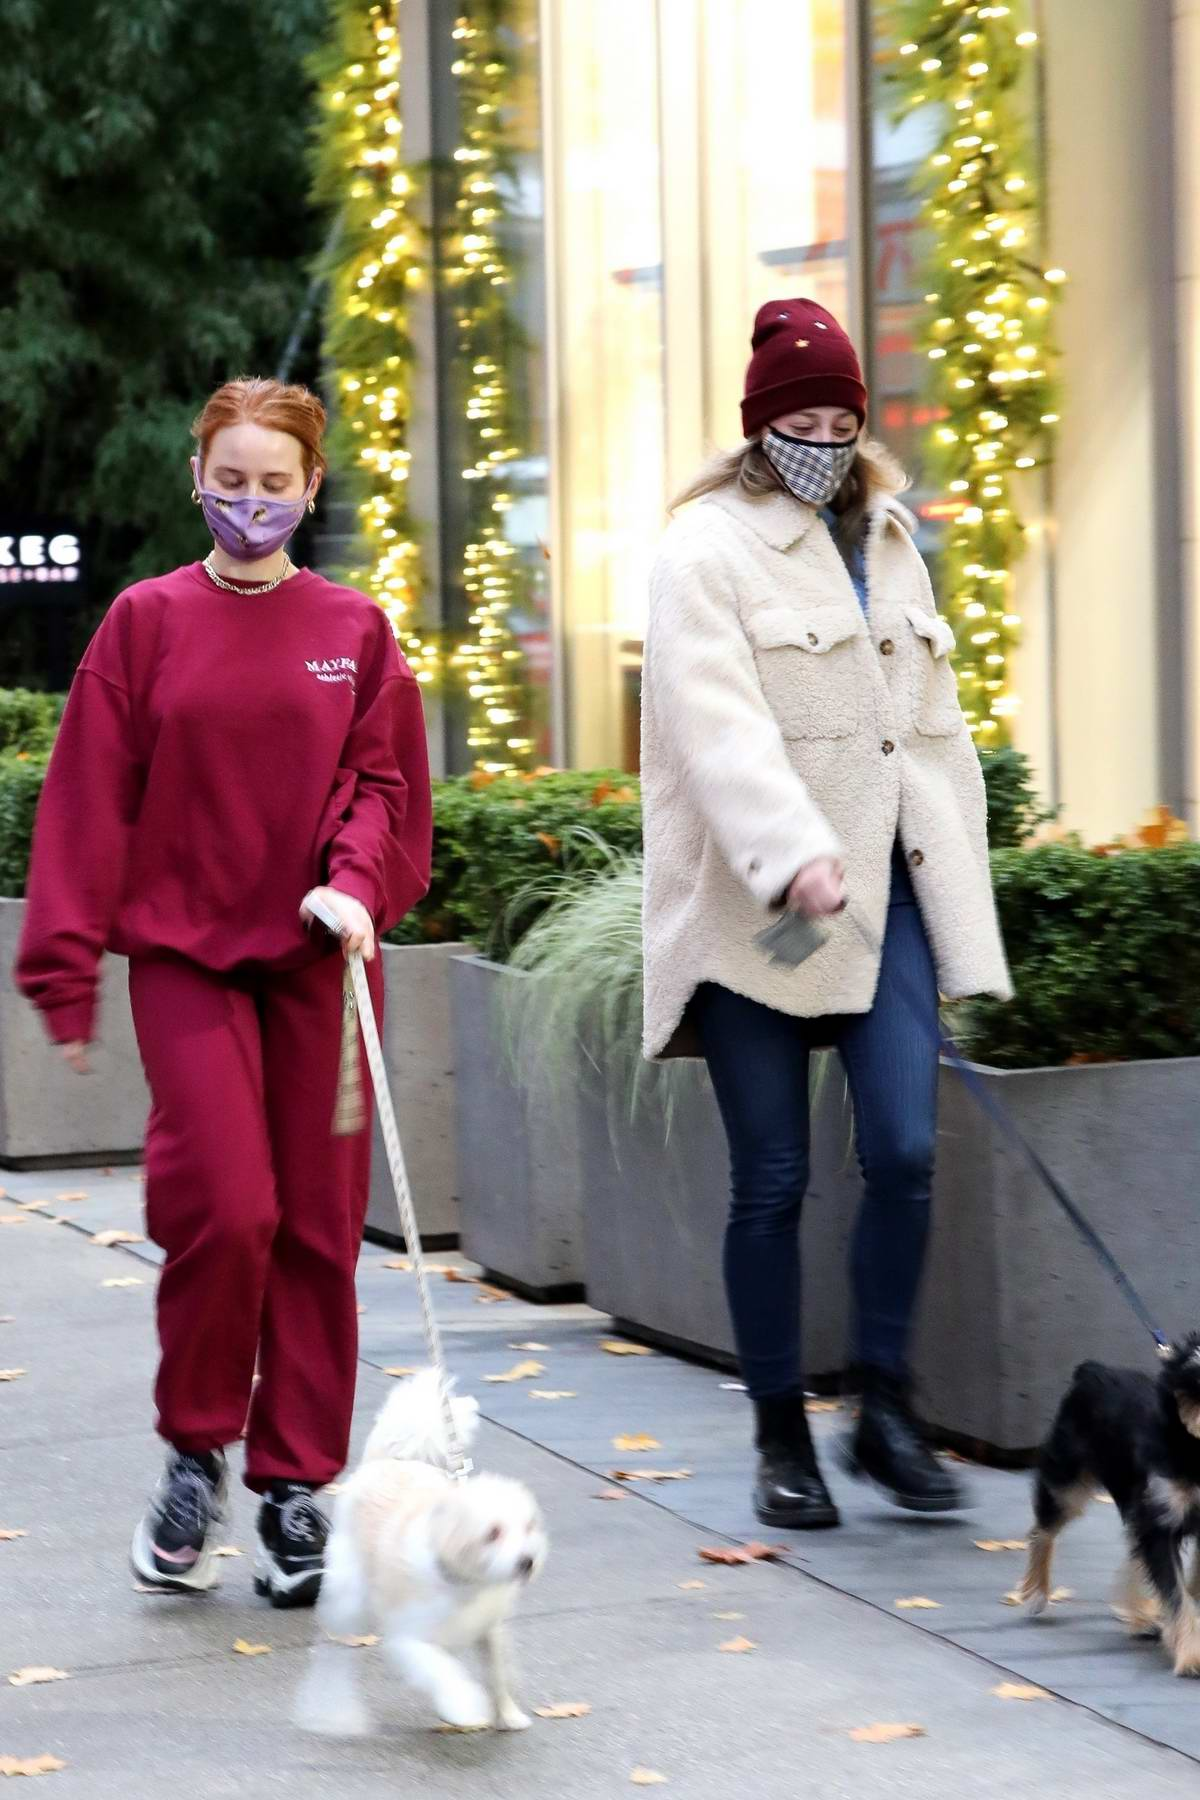 Madelaine Petsch and Lili Reinhart step out to walk their dogs in Vancouver, Canada